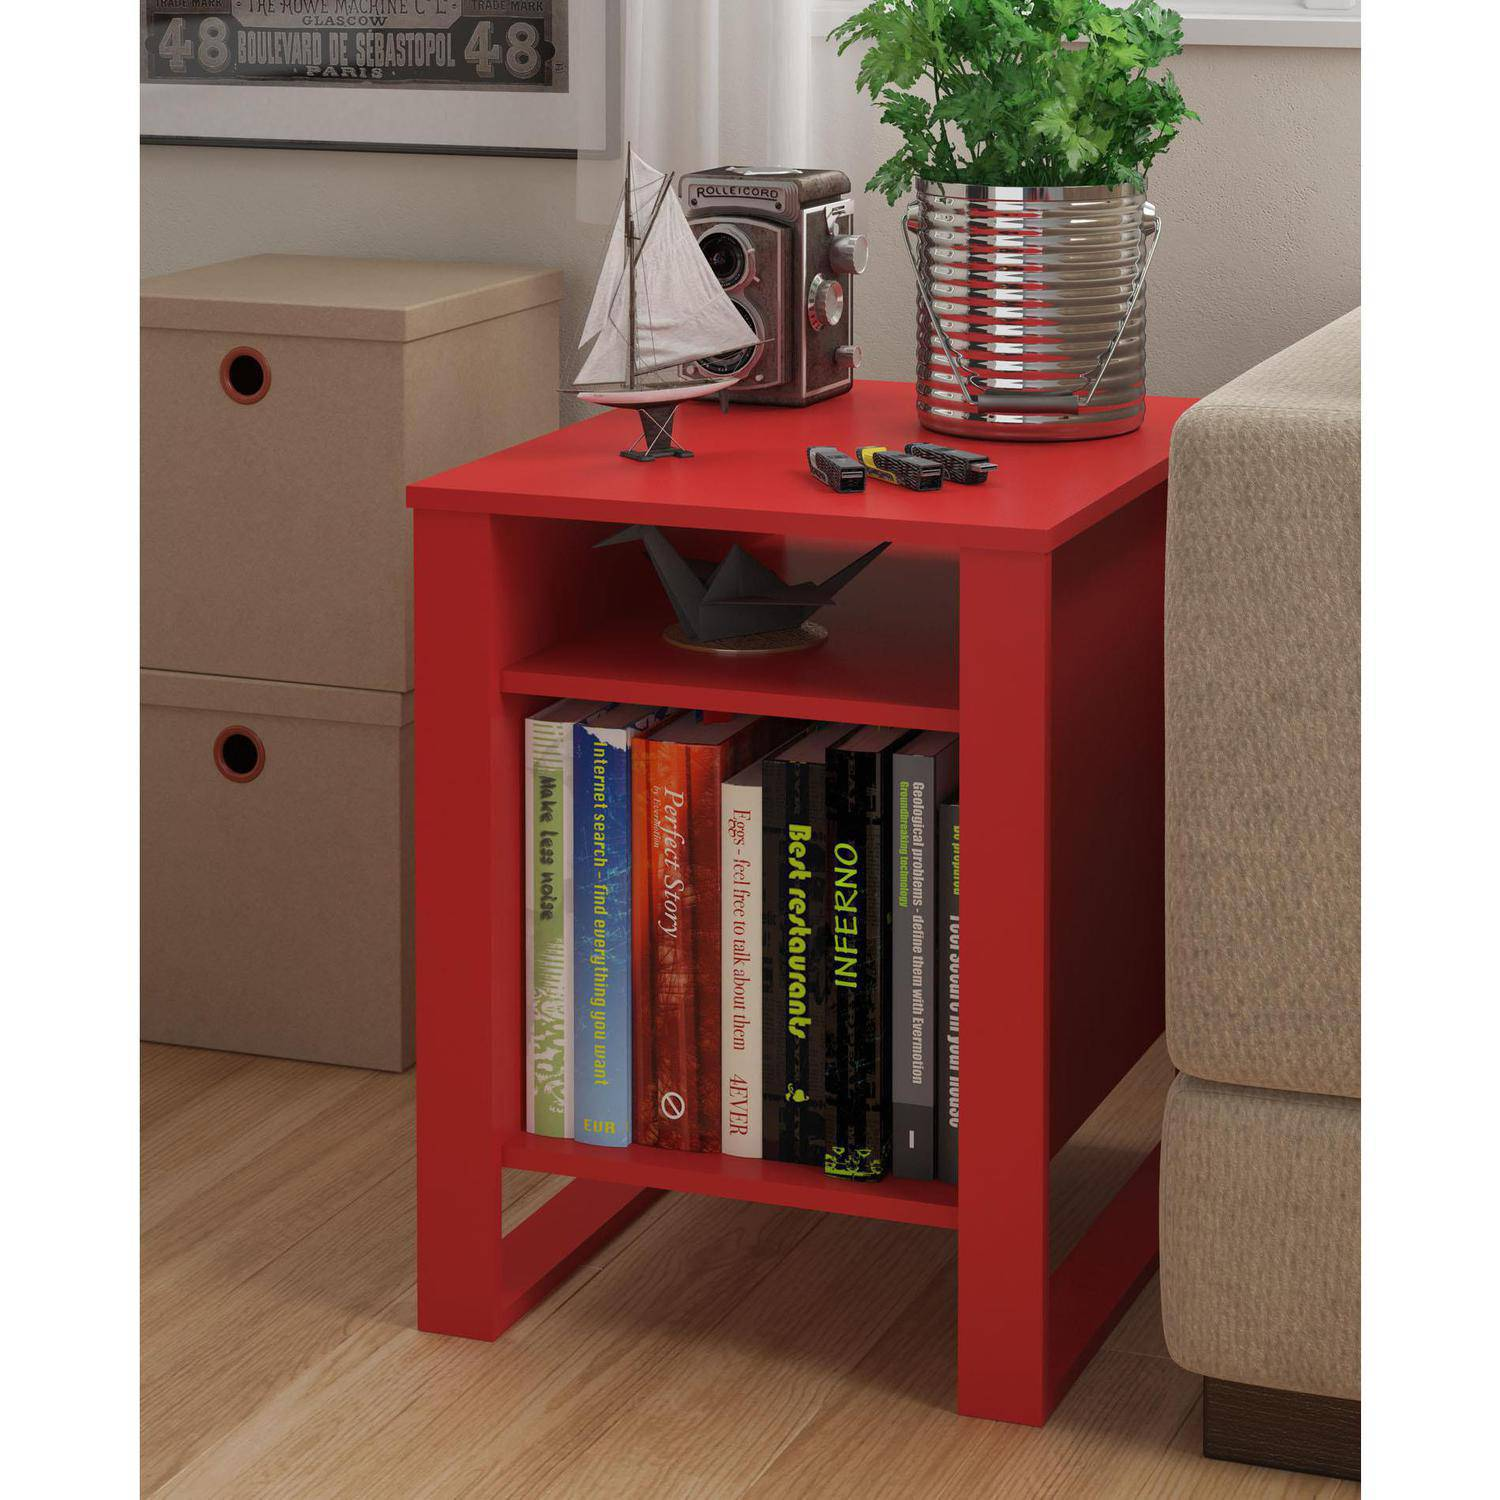 accent tiffany redmond side shades tables plus painting wood metal threshol lighting lamps and ideas small outdoor ott room mosaic decor design living lamp decorating target red